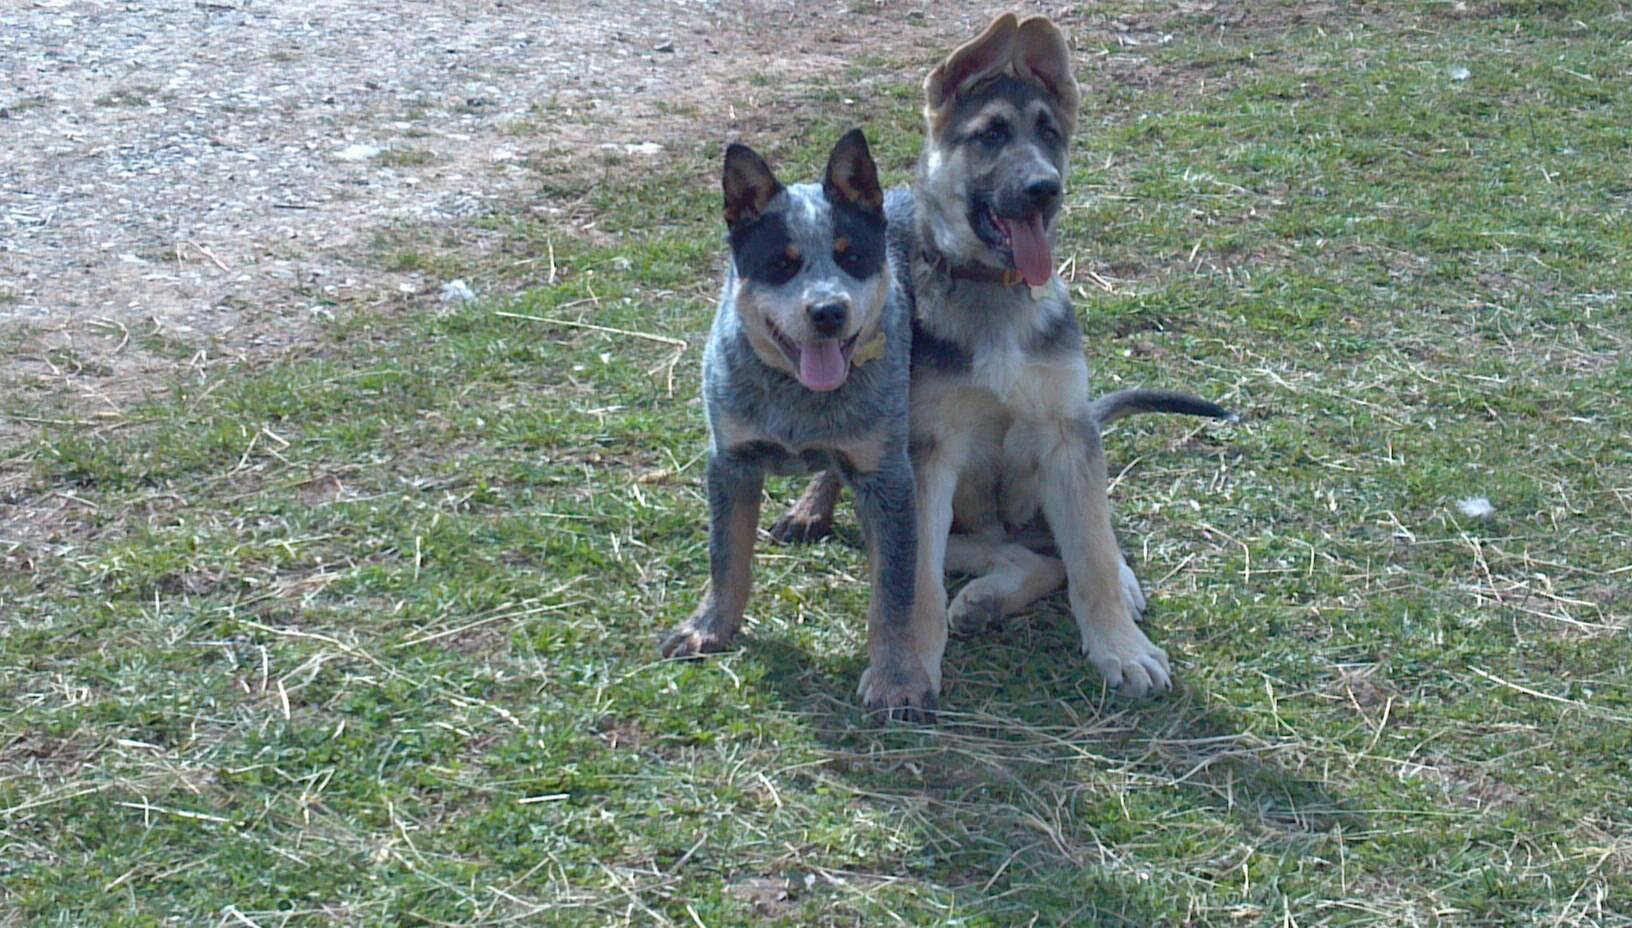 Grit and his German Shepherd buddy